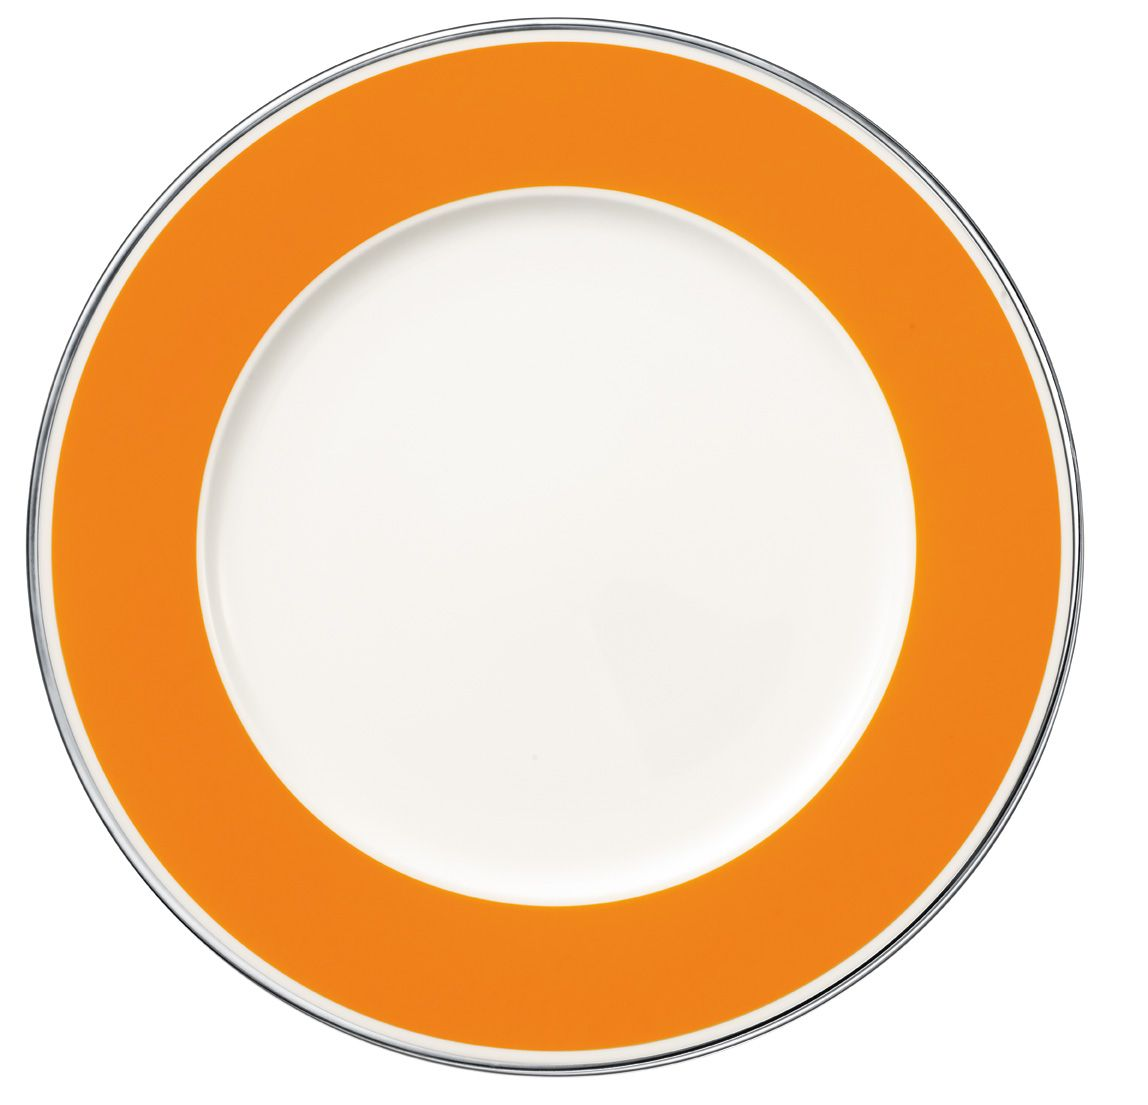 Anmut orange sunset buffet plate 30cm